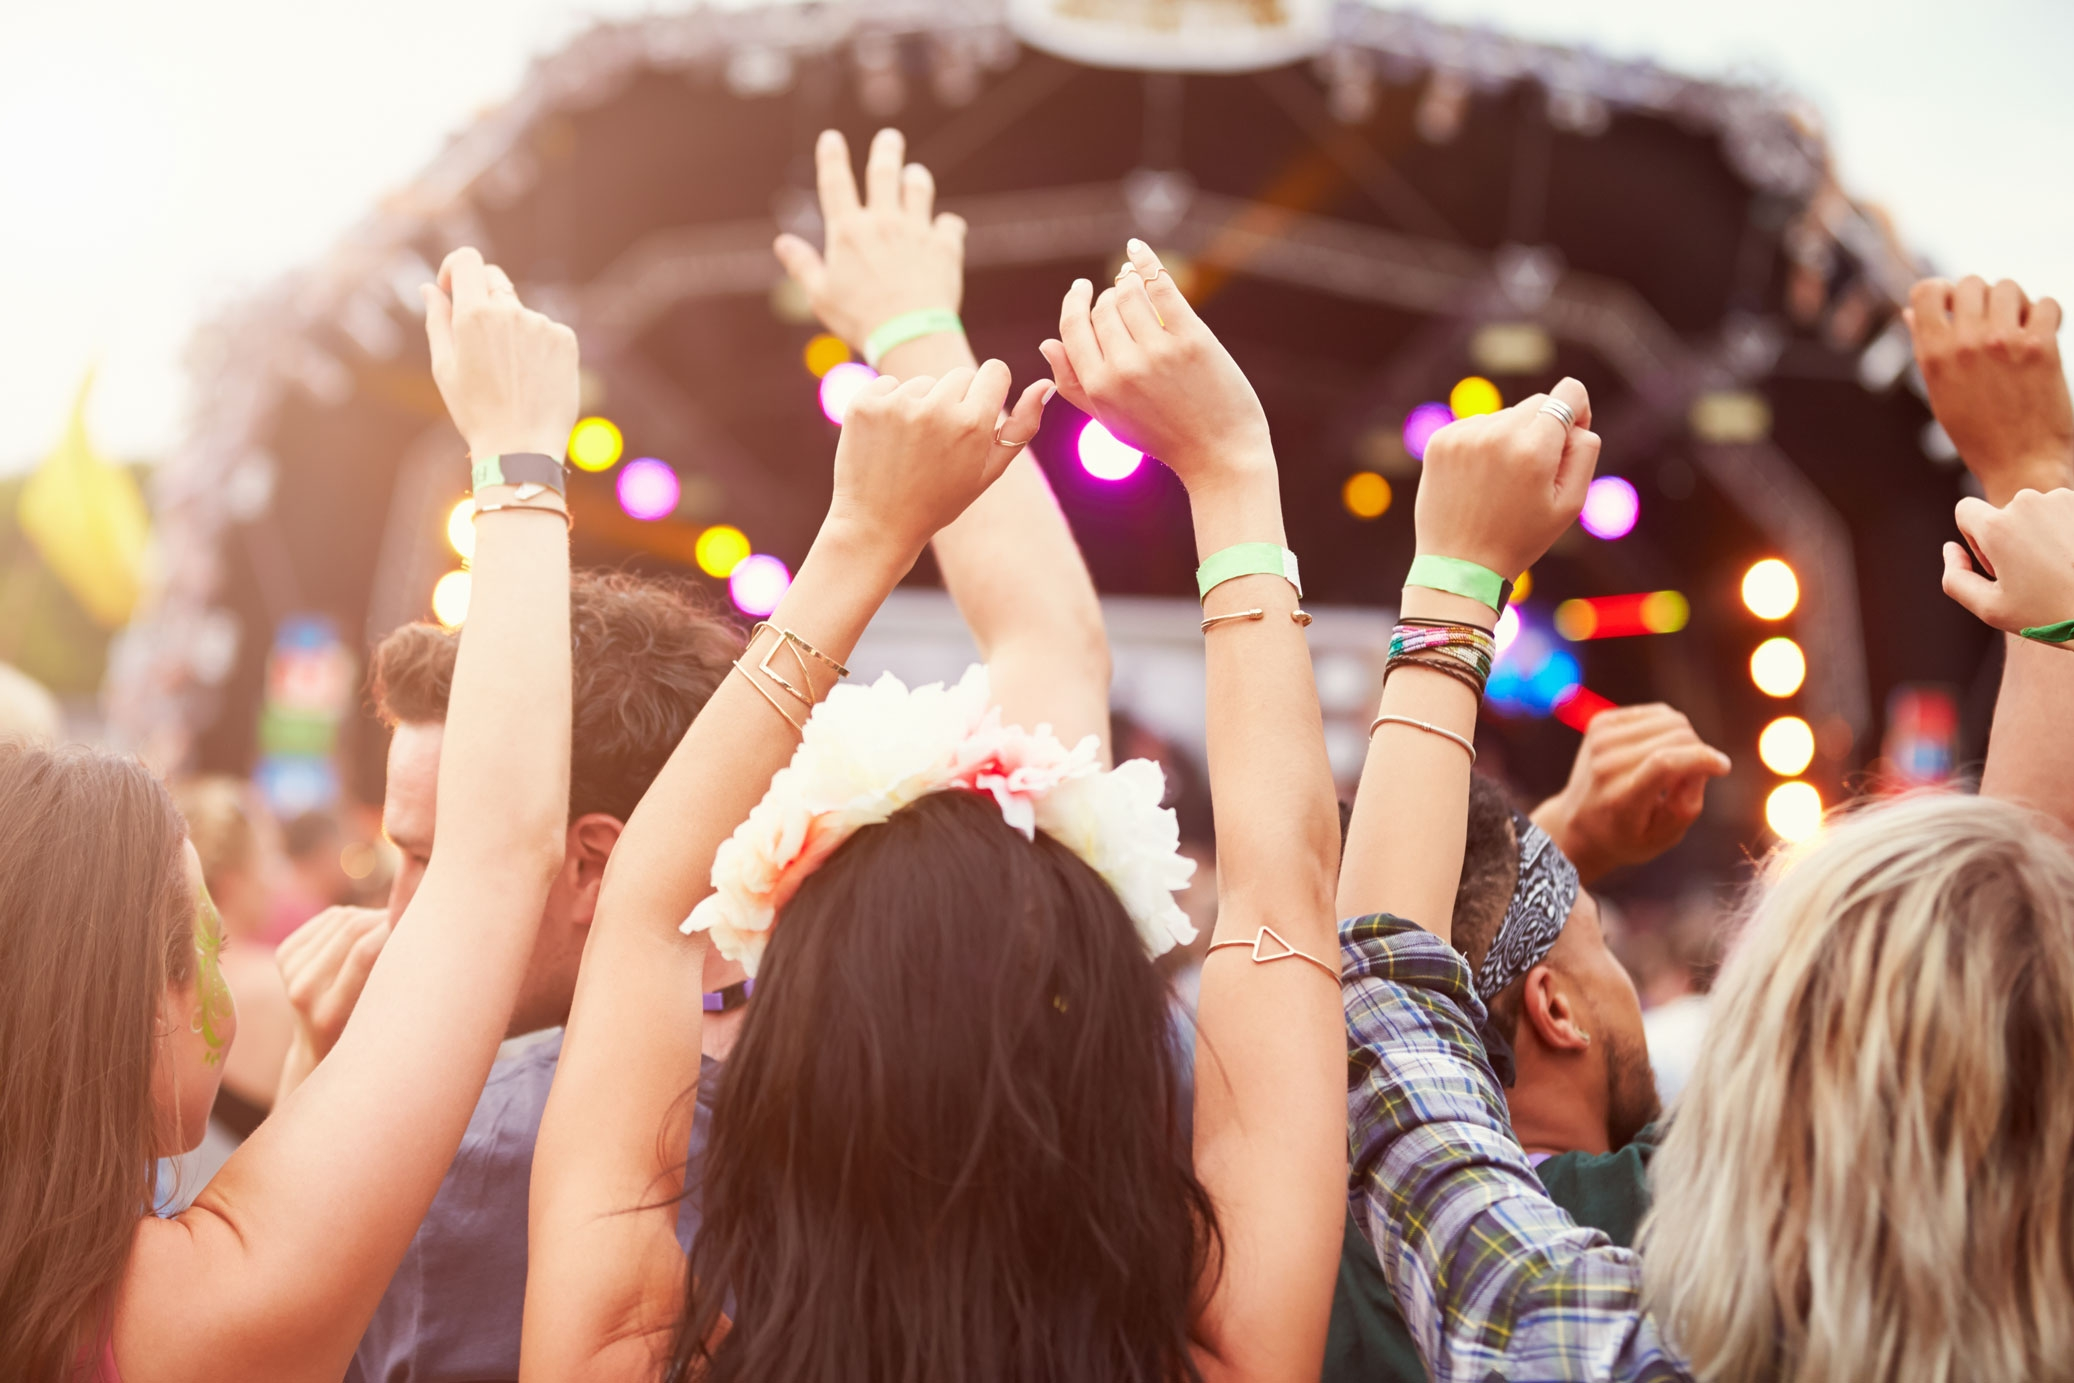 We supply major Music Festivals - in the North East such as Hardwick Hall. Call us on 0191 5238008